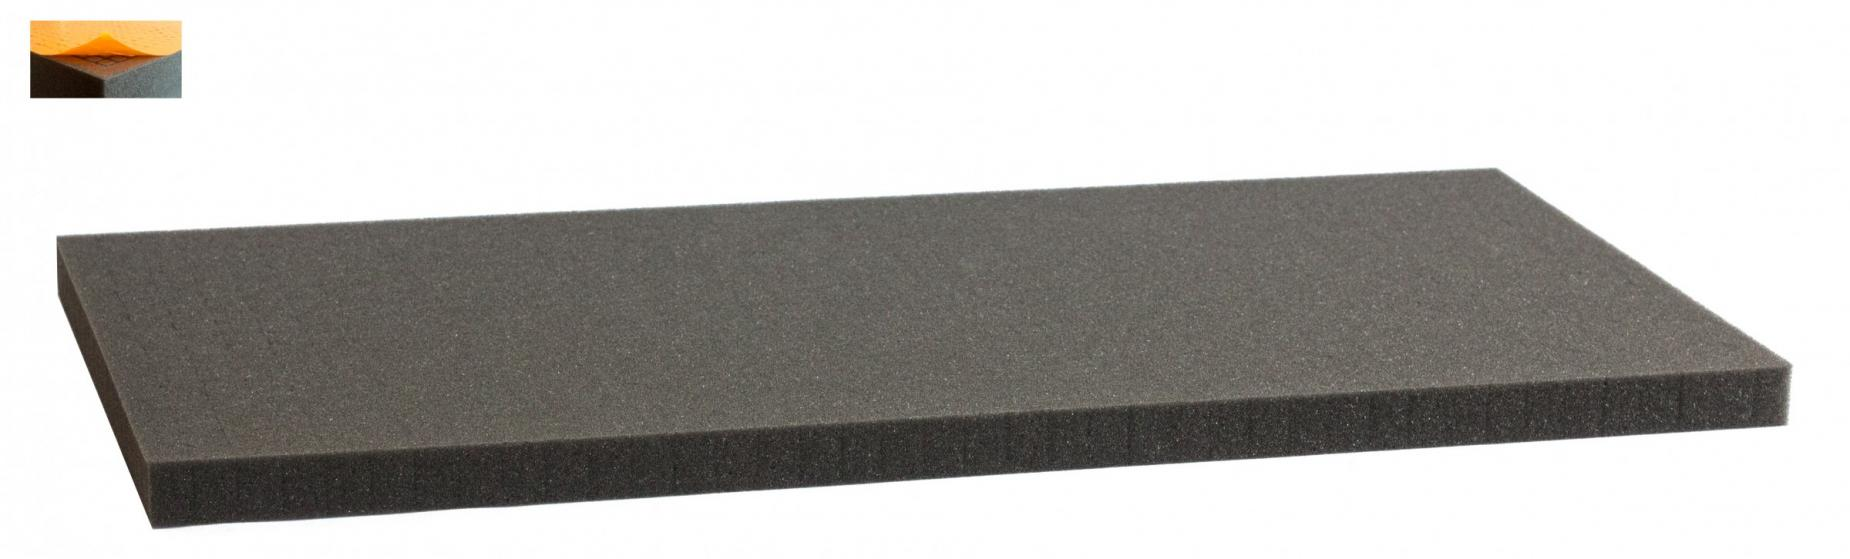 500 mm x 250 mm x 20 mm - Raster 12,5 mm - Pick and Pluck / Pre-Cubed foam tray self-adhesive